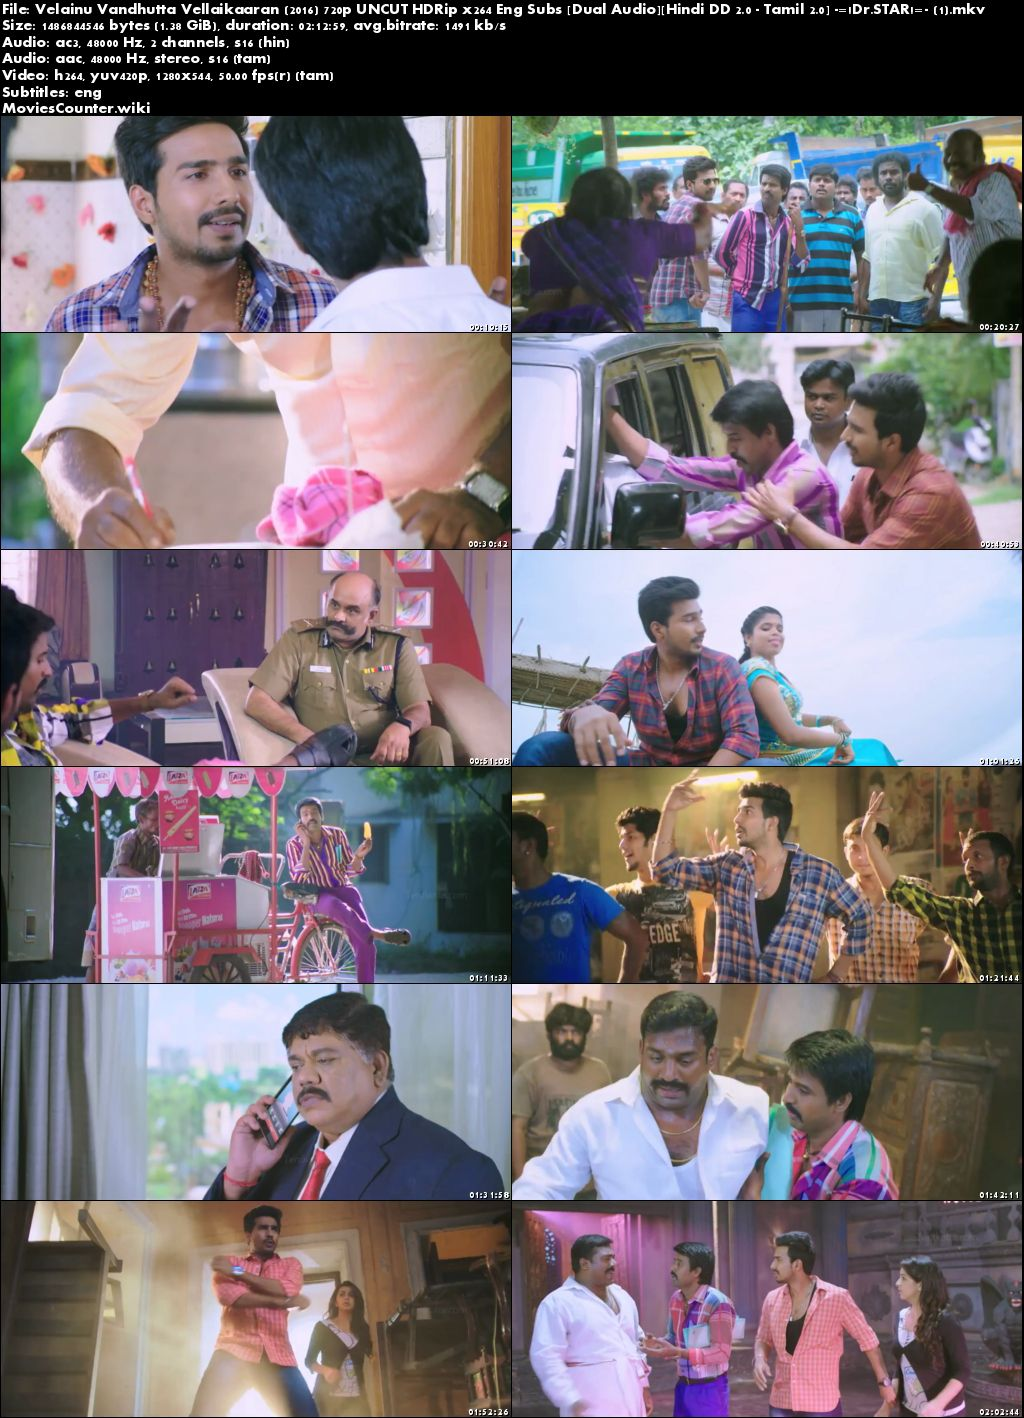 Screen shots Velainu Vandhutta Vellaikaaran 2016 Hindi Dubbed HD 720p